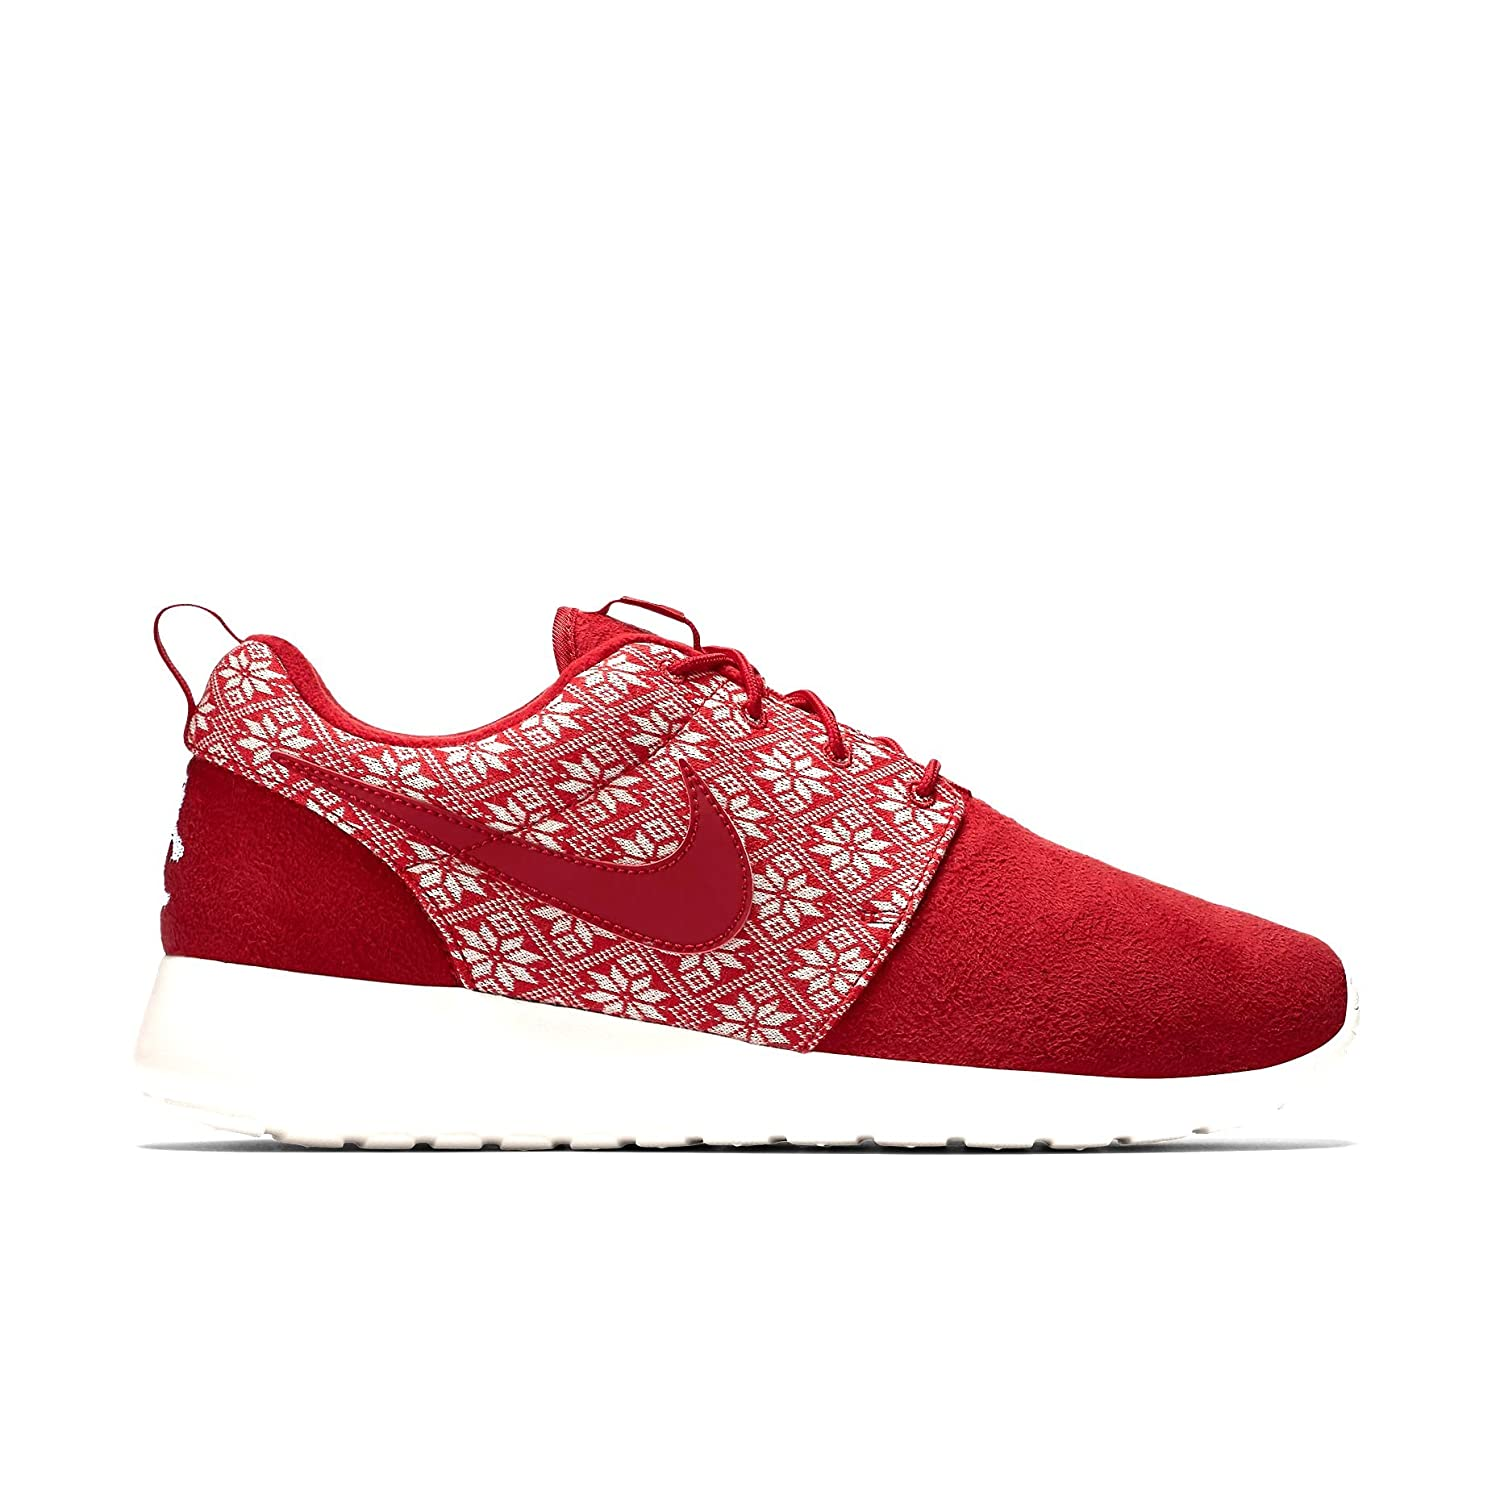 reputable site 5308f f225f Nike Men's Roshe One Winter Running Shoes, Red/Grey (Gym Red ...